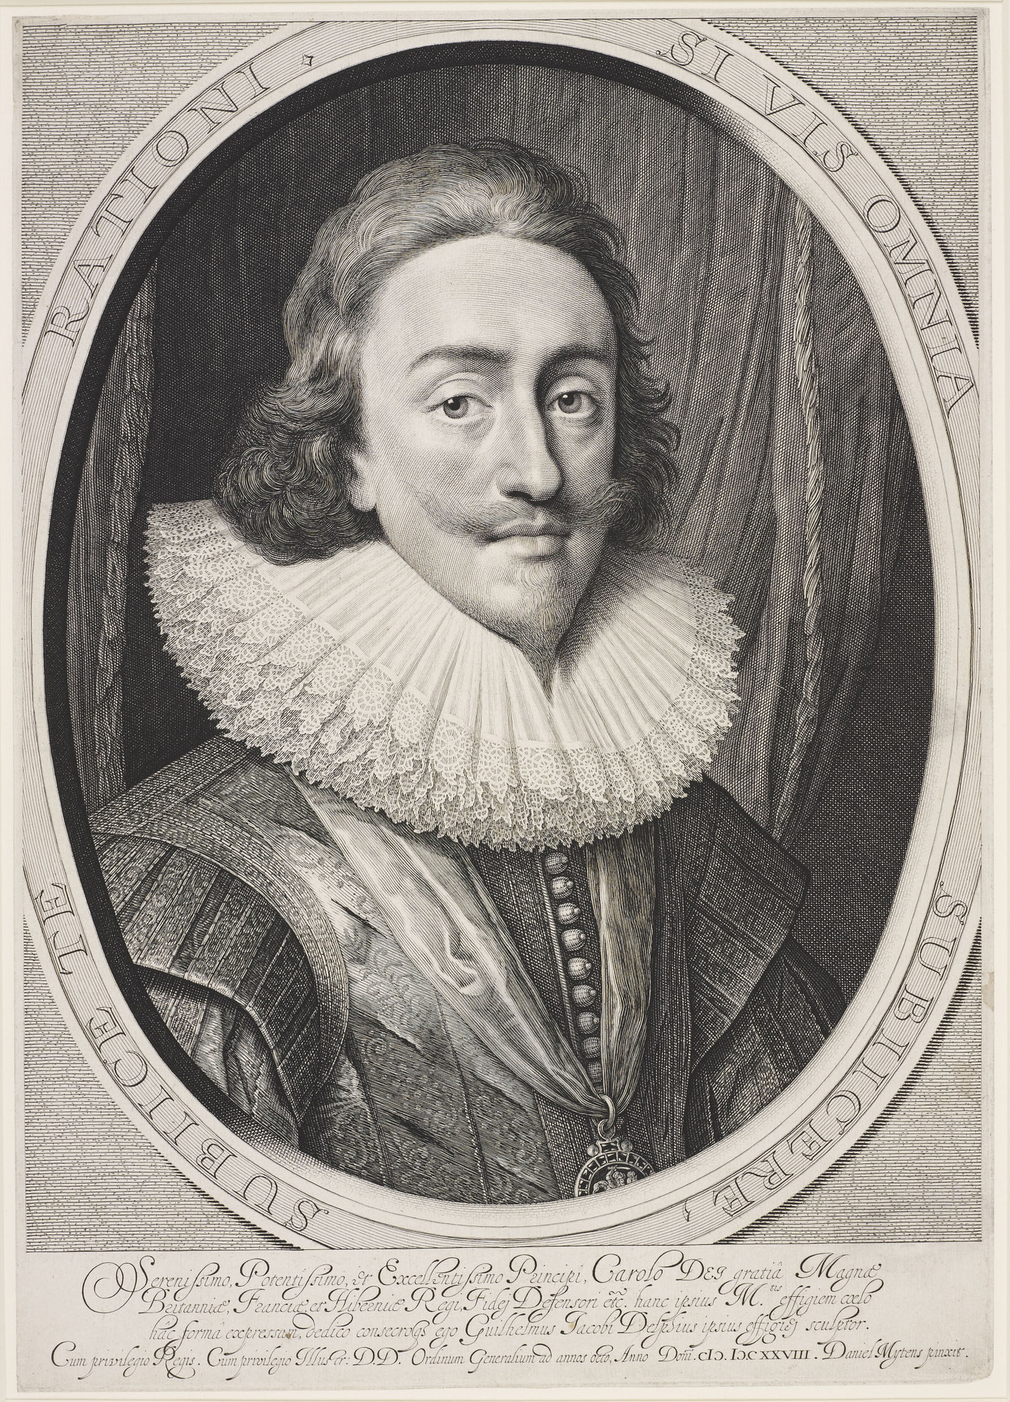 Engraving of Charles I as king. Bust length with long hair, closed ruff, embroidered doublet, and order on ribbon around neck. Within an oval border bearing Latin inscription, within a rectangular frame with Latin inscription below. Borders trimmed. Very